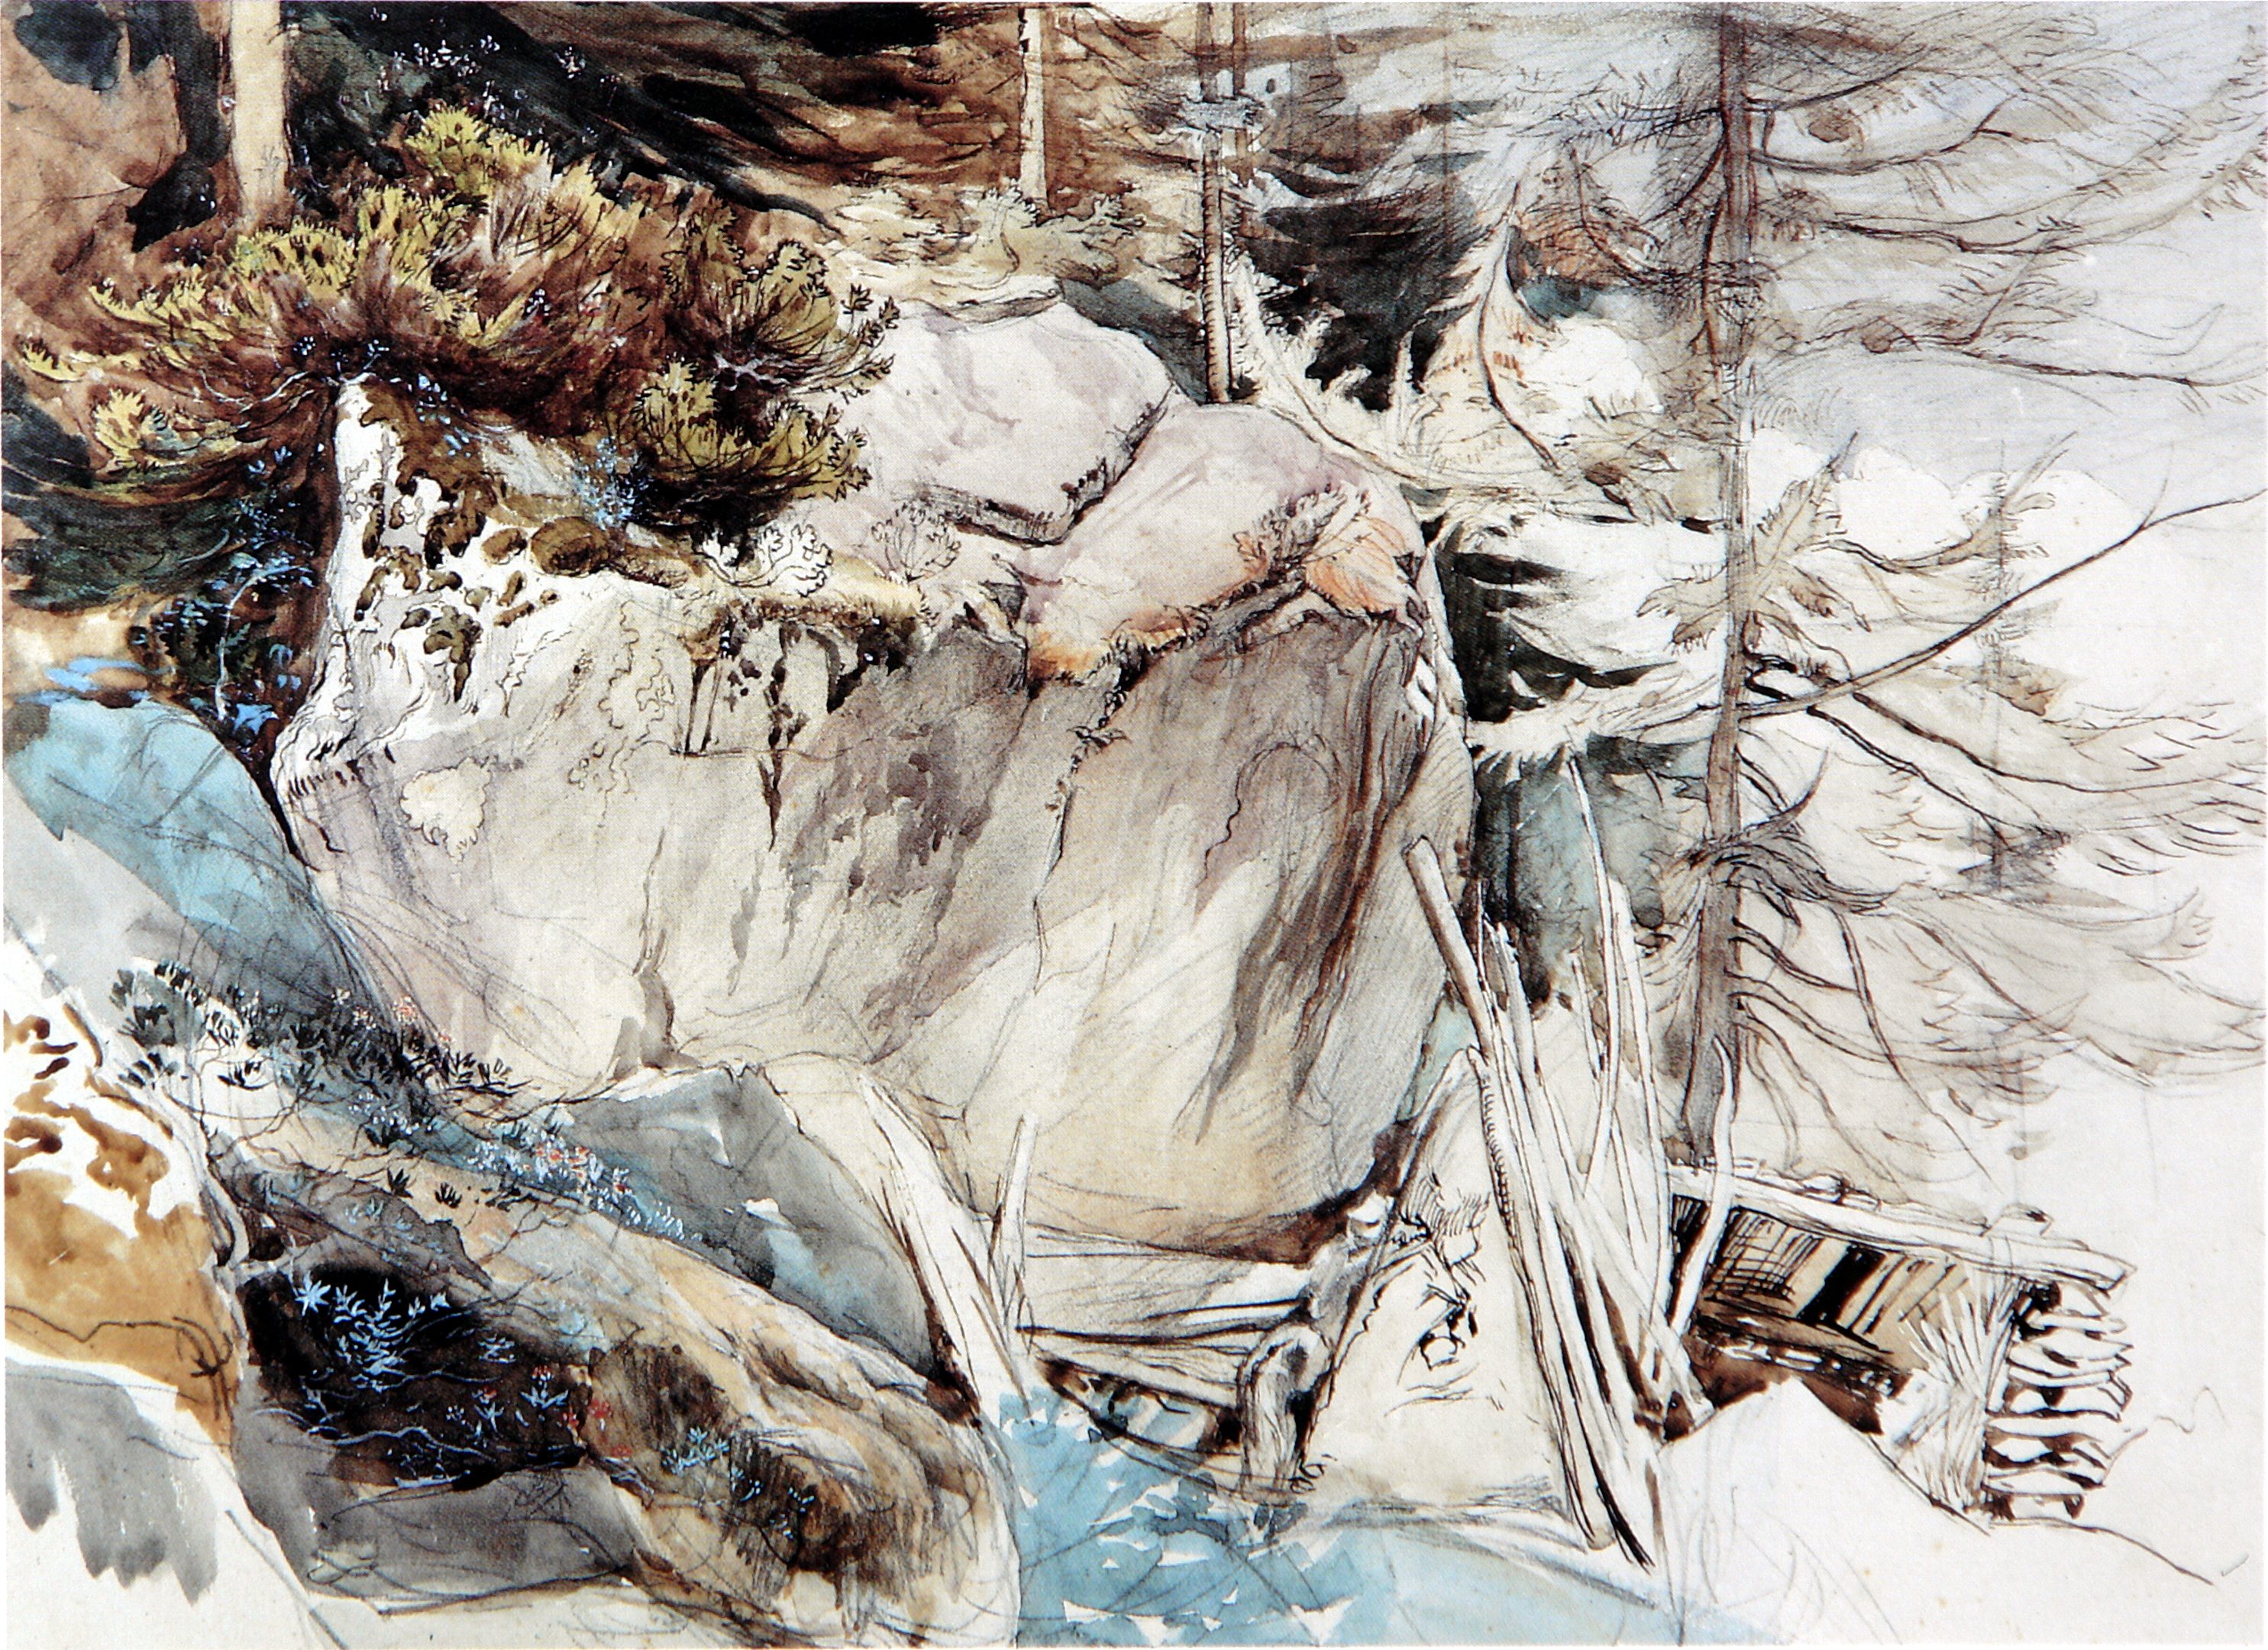 https://uploads7.wikiart.org/images/john-ruskin/mountain-rock-and-alpine-rose-1845.jpg